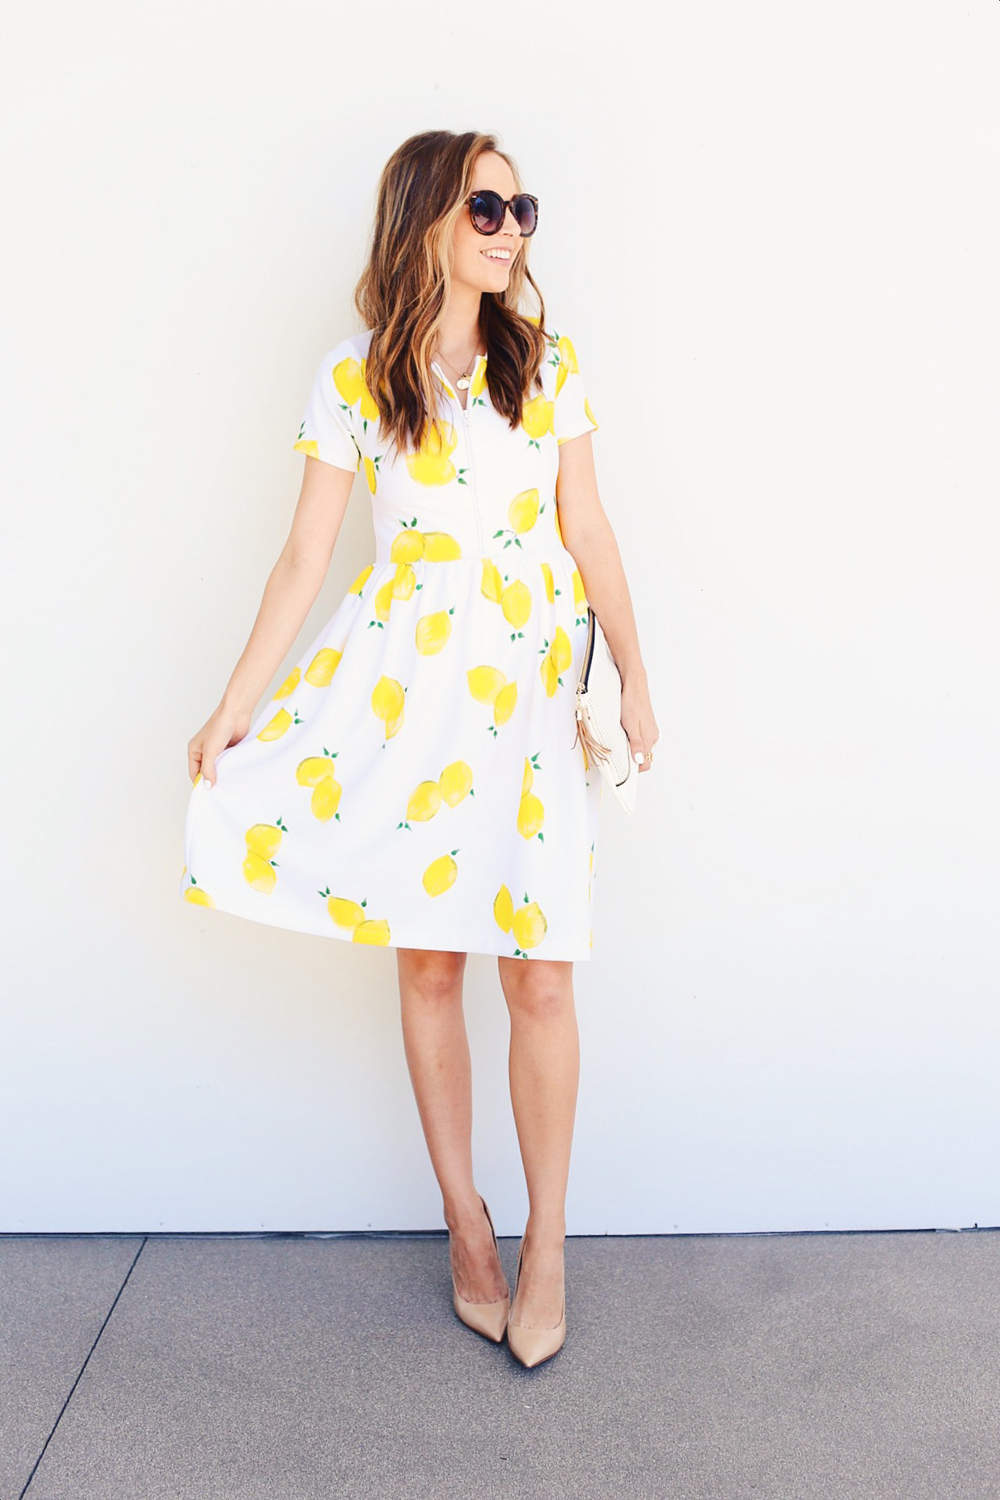 Merrick's Art DIY Lemon Dress